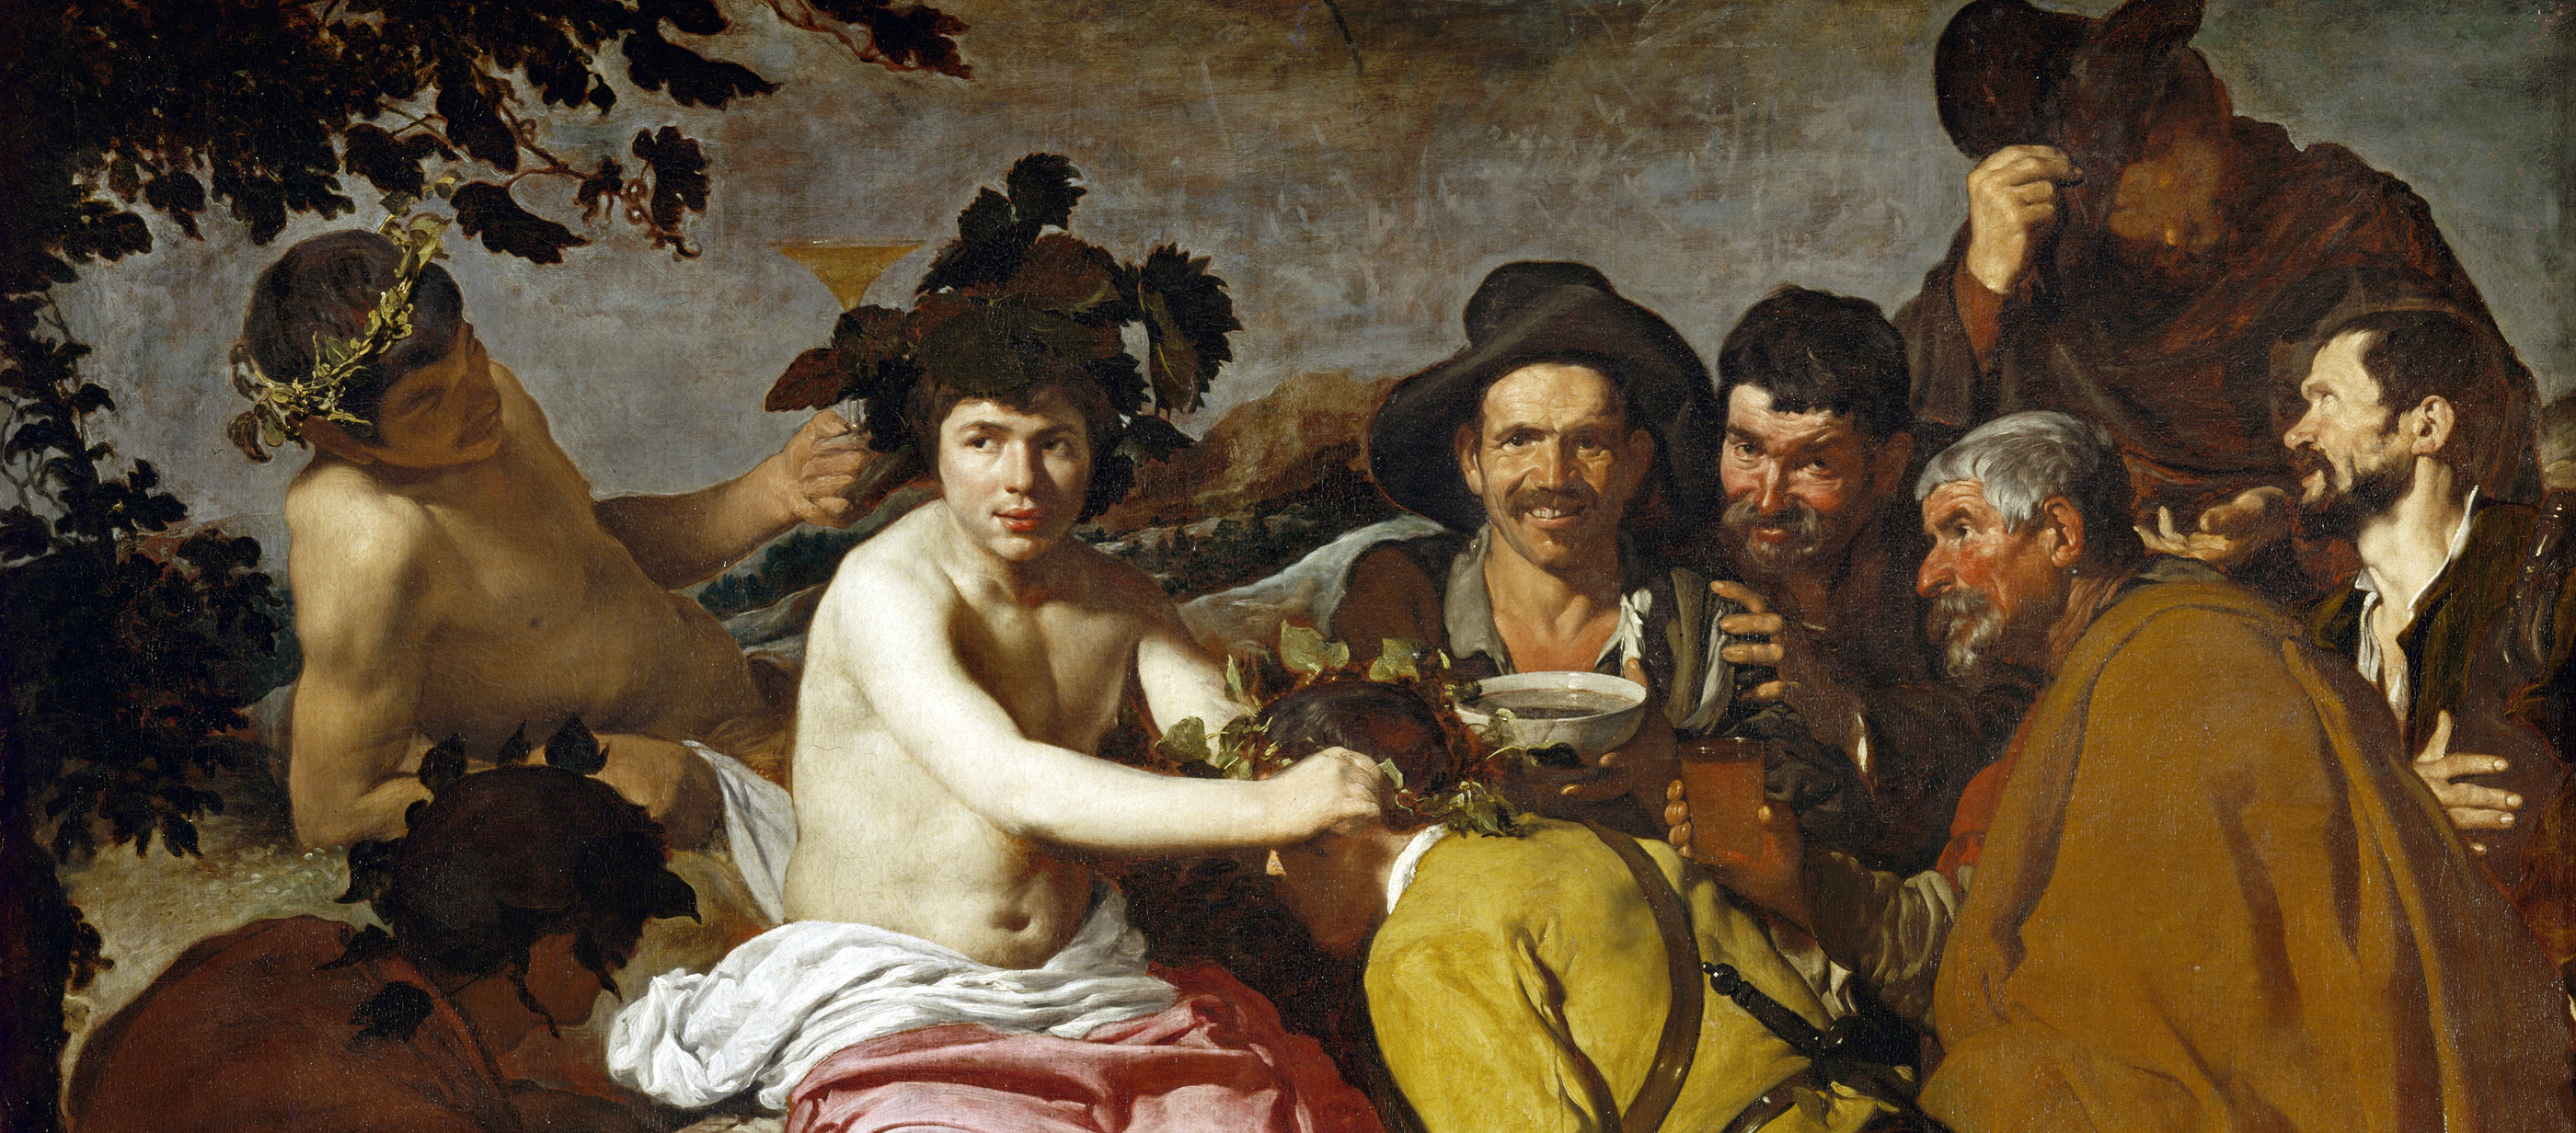 The Triumph of Bacchus (The Drinkers), by Diego Velàzquez, 1628.